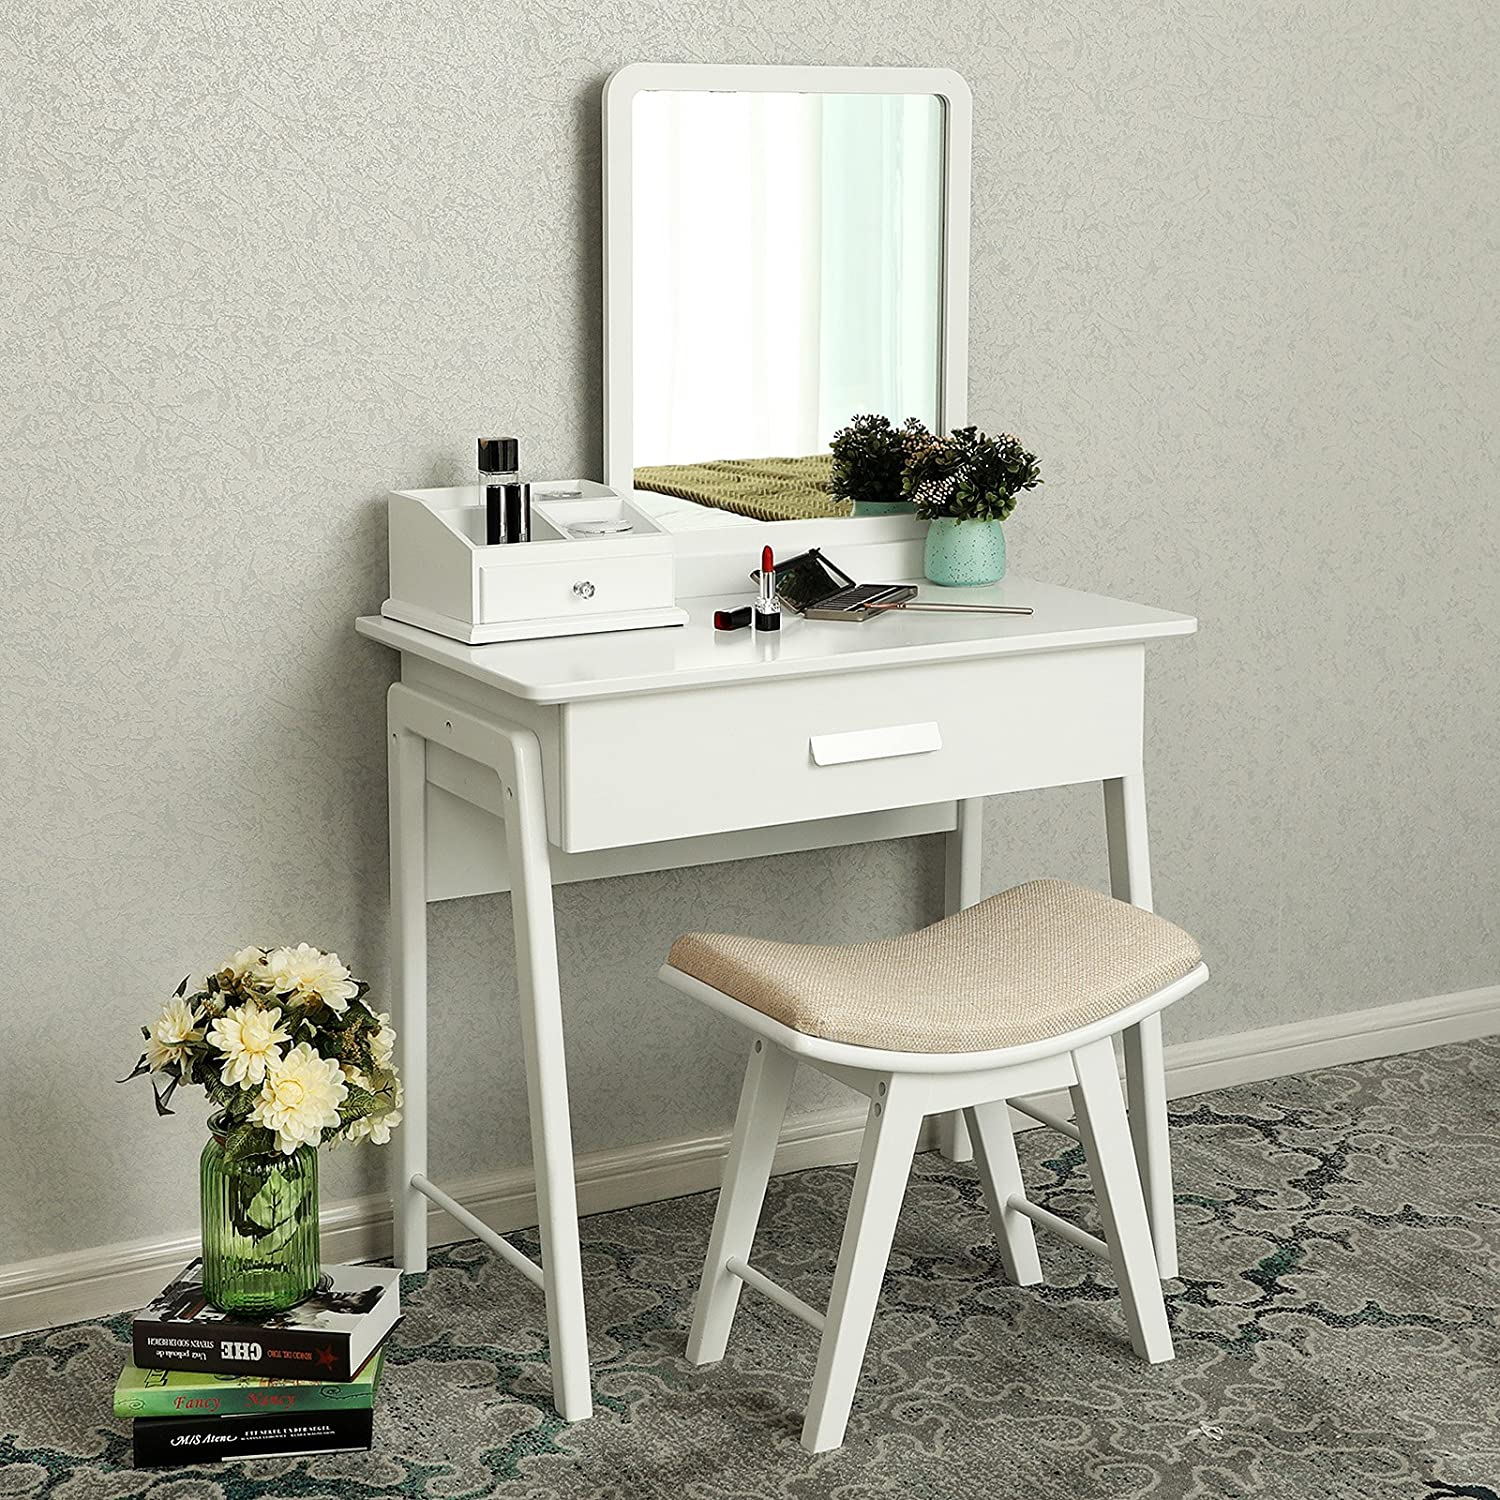 SONGMICS Vanity Table Set with Square Mirror and Makeup Organizer Dressing Table